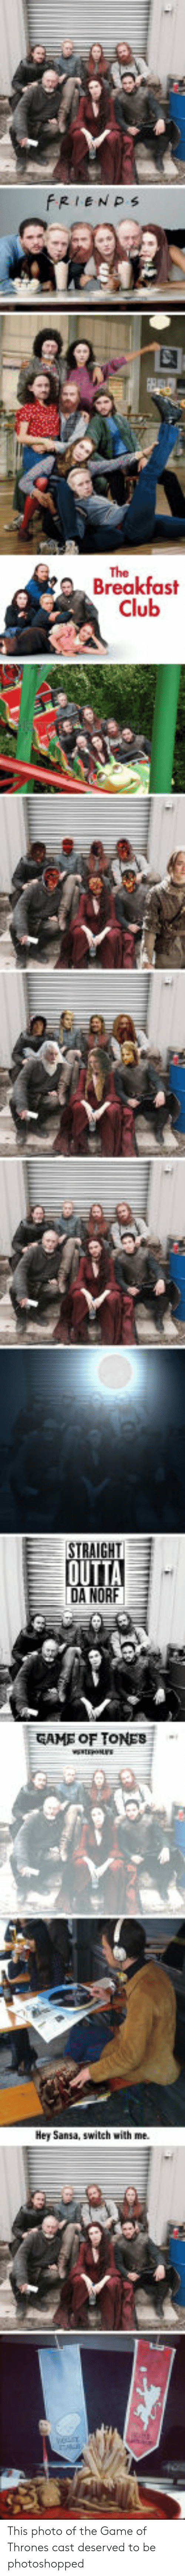 Breakfast Club: FRIENPs  The  Breakfast  Club  STRAIGHT  DA NORF  GAME OF TONES  Hey Sansa, switch with me. This photo of the Game of Thrones cast deserved to be photoshopped